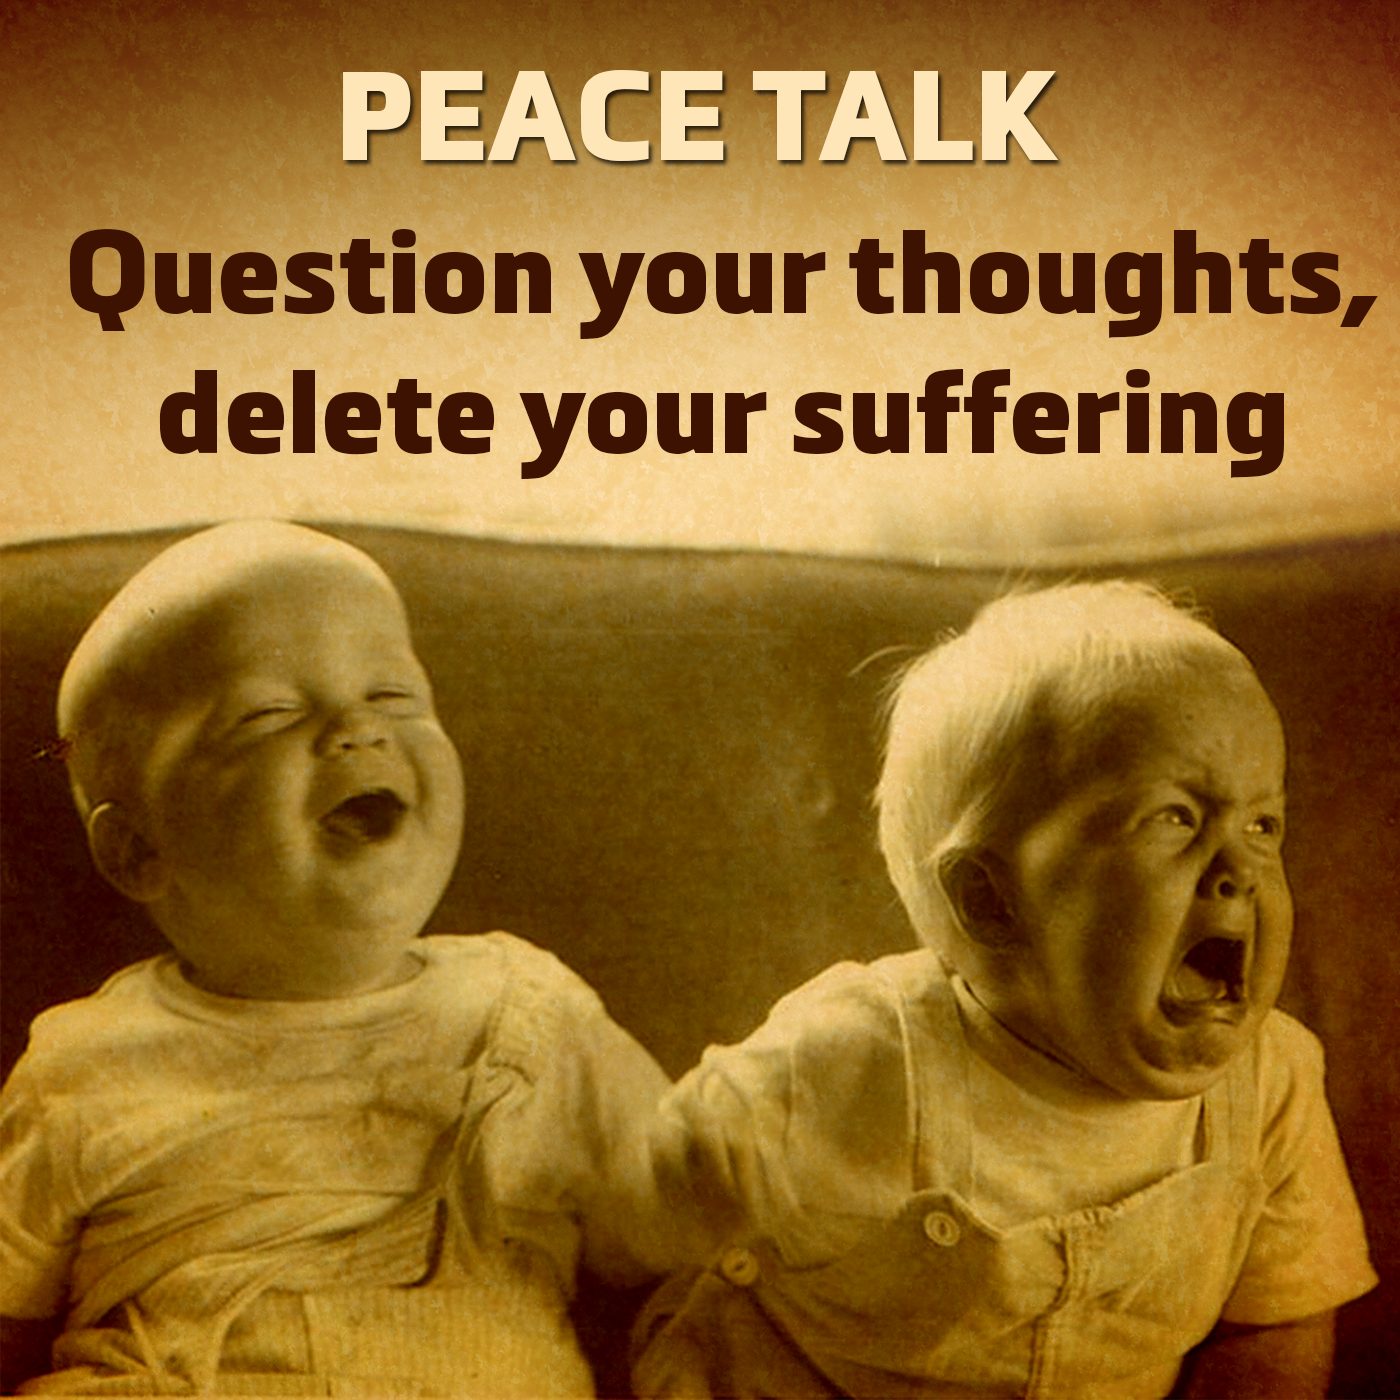 Peace Talk Episode 167: they rejected and excluded me